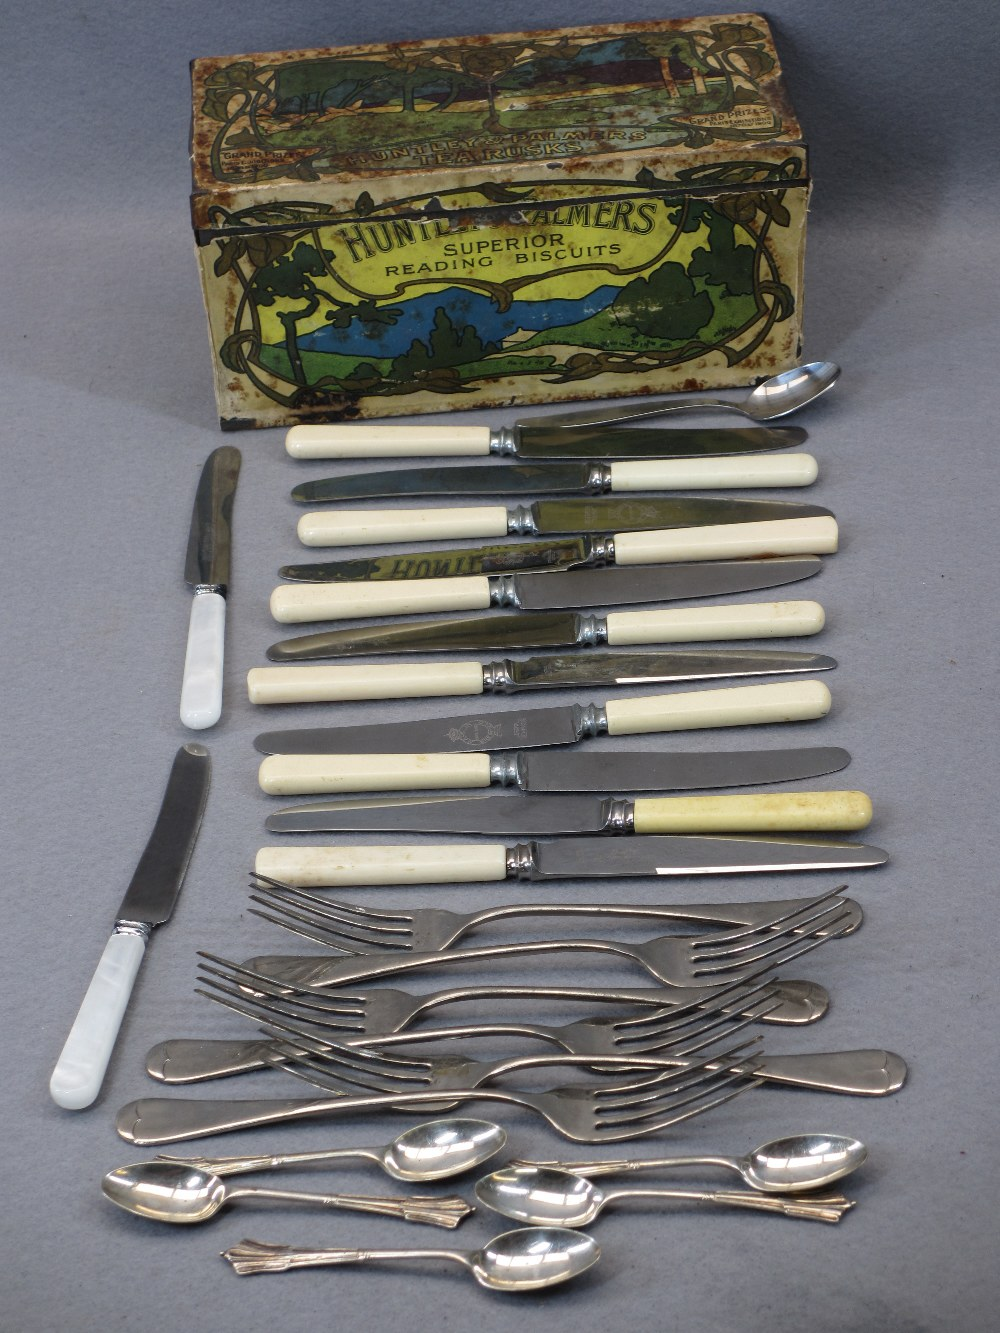 EP & OTHER CUTLERY - in a rare paper covered Huntley & Palmer's Tea Rusks tin, Art Nouveau style